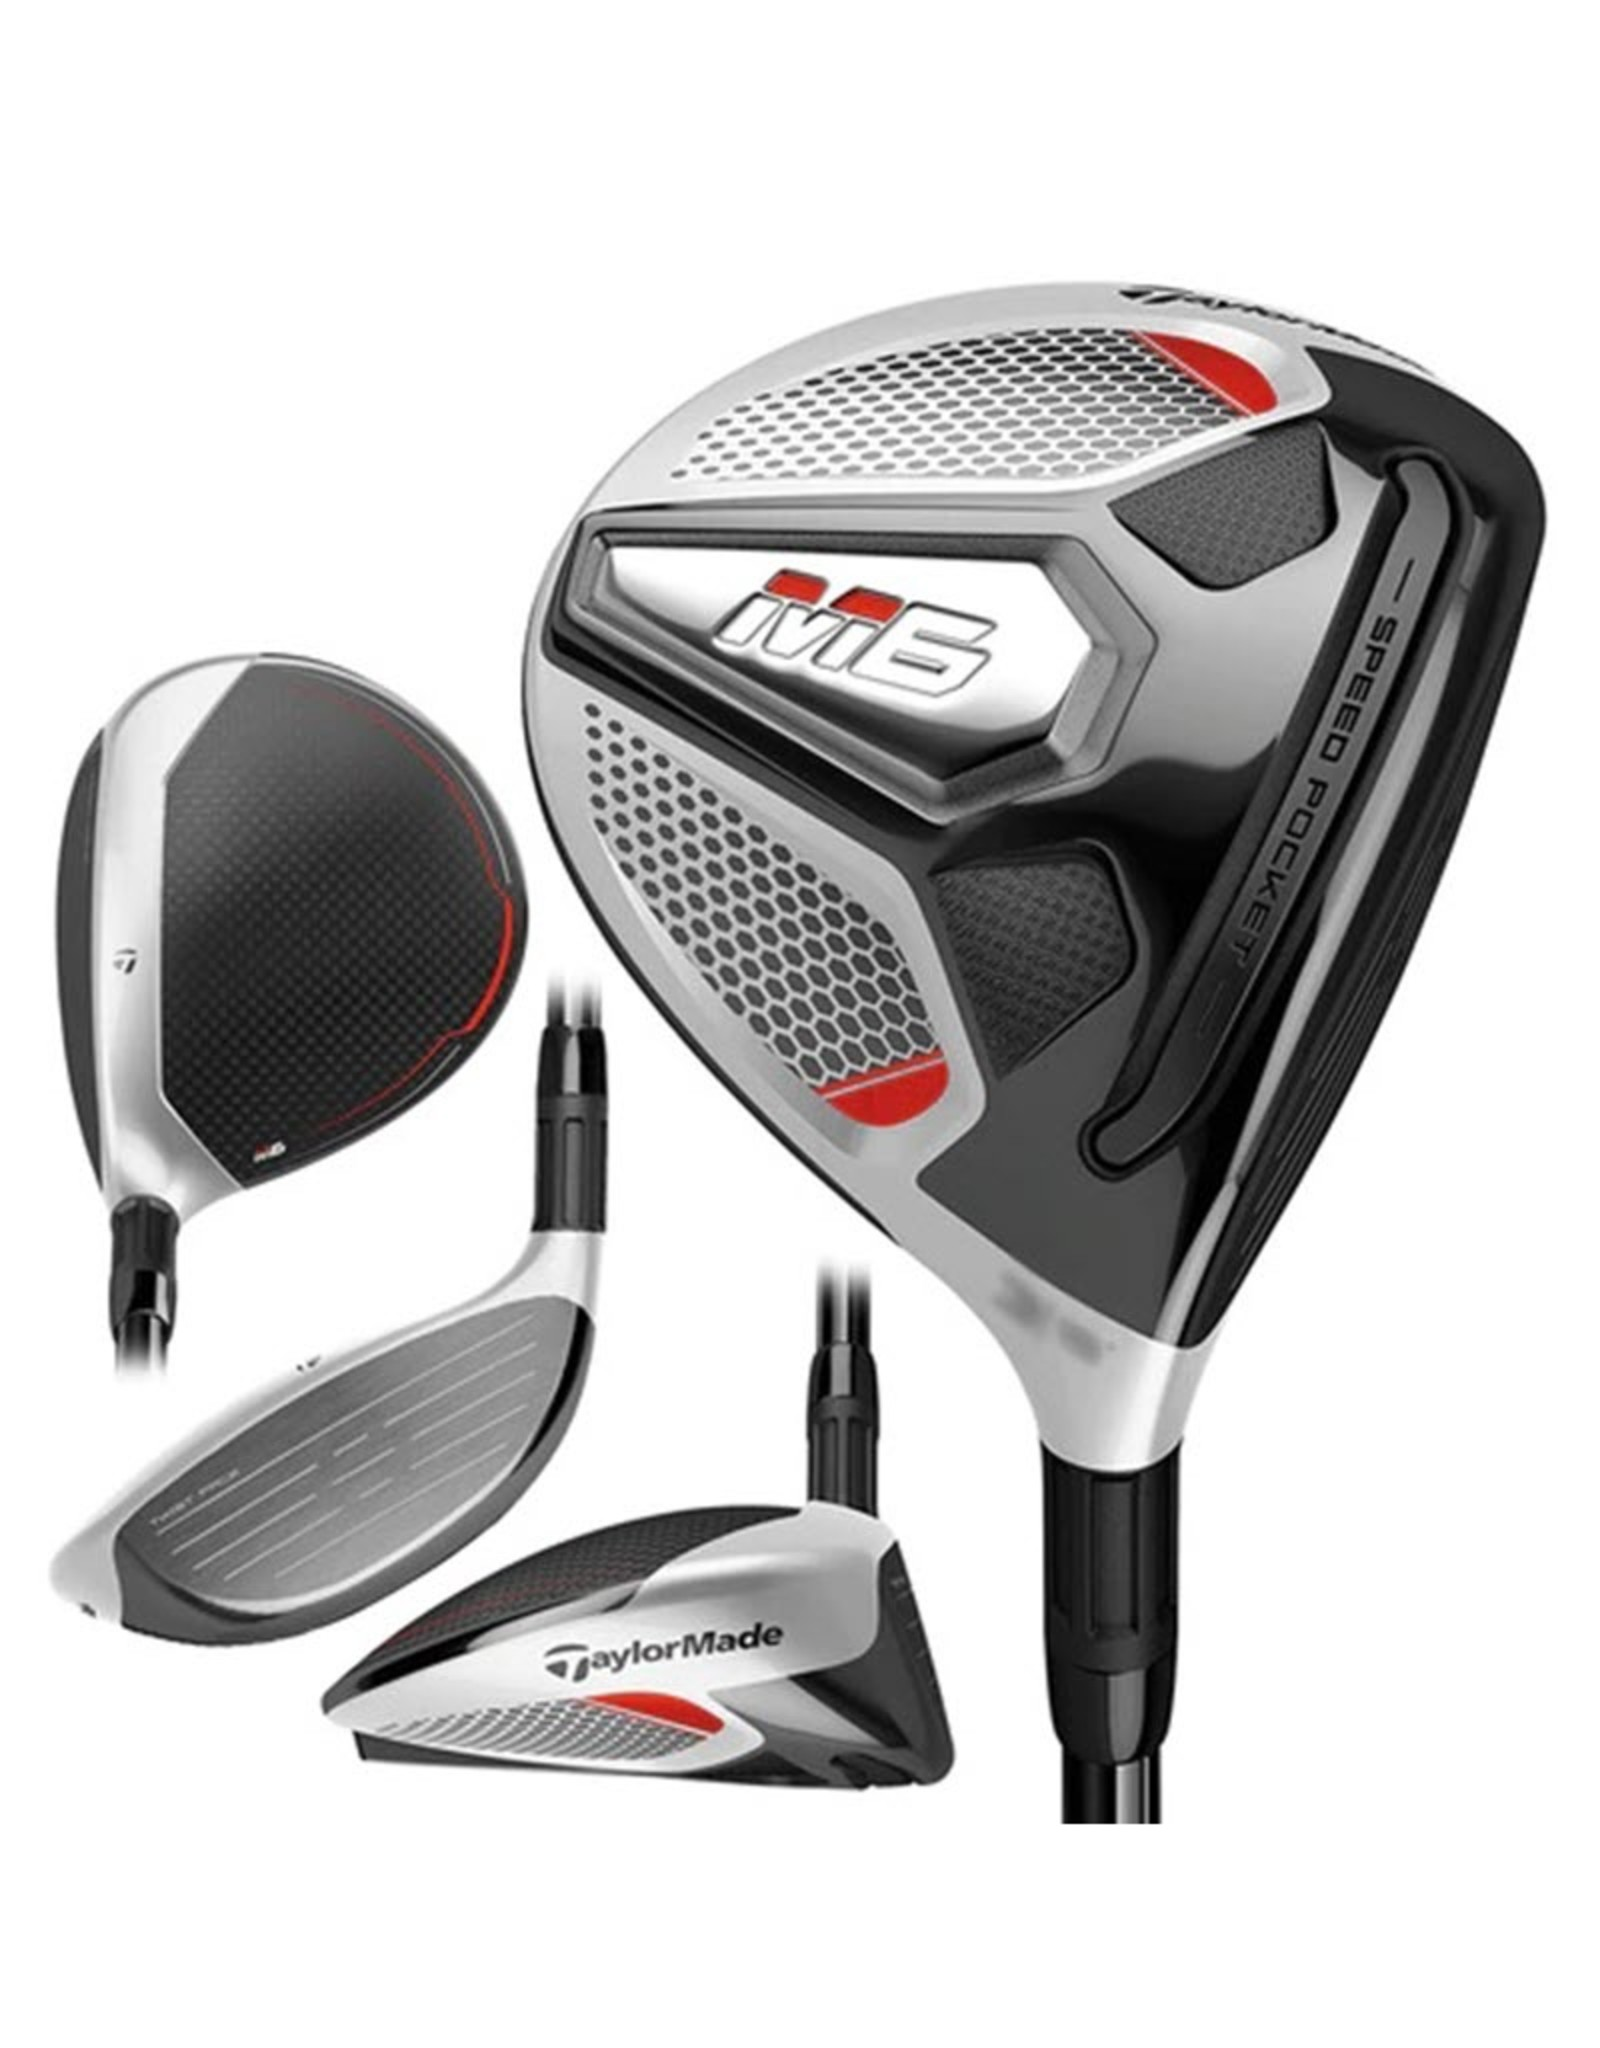 TAYLORMADE TAYLORMADE 2019 WMNS M6 FAIRWAY